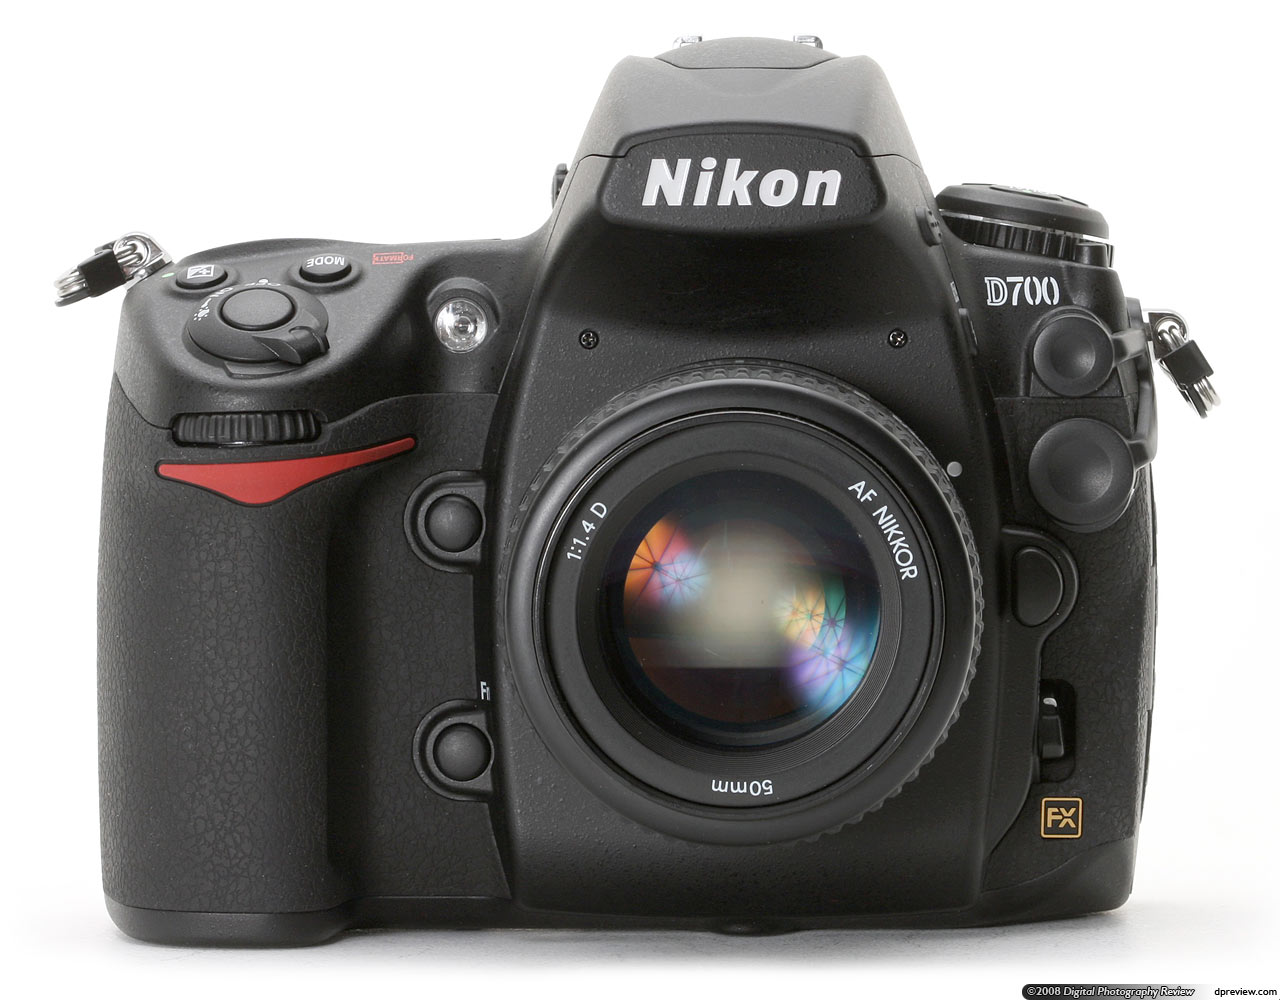 Nikon D700 Review: Digital Photography Review